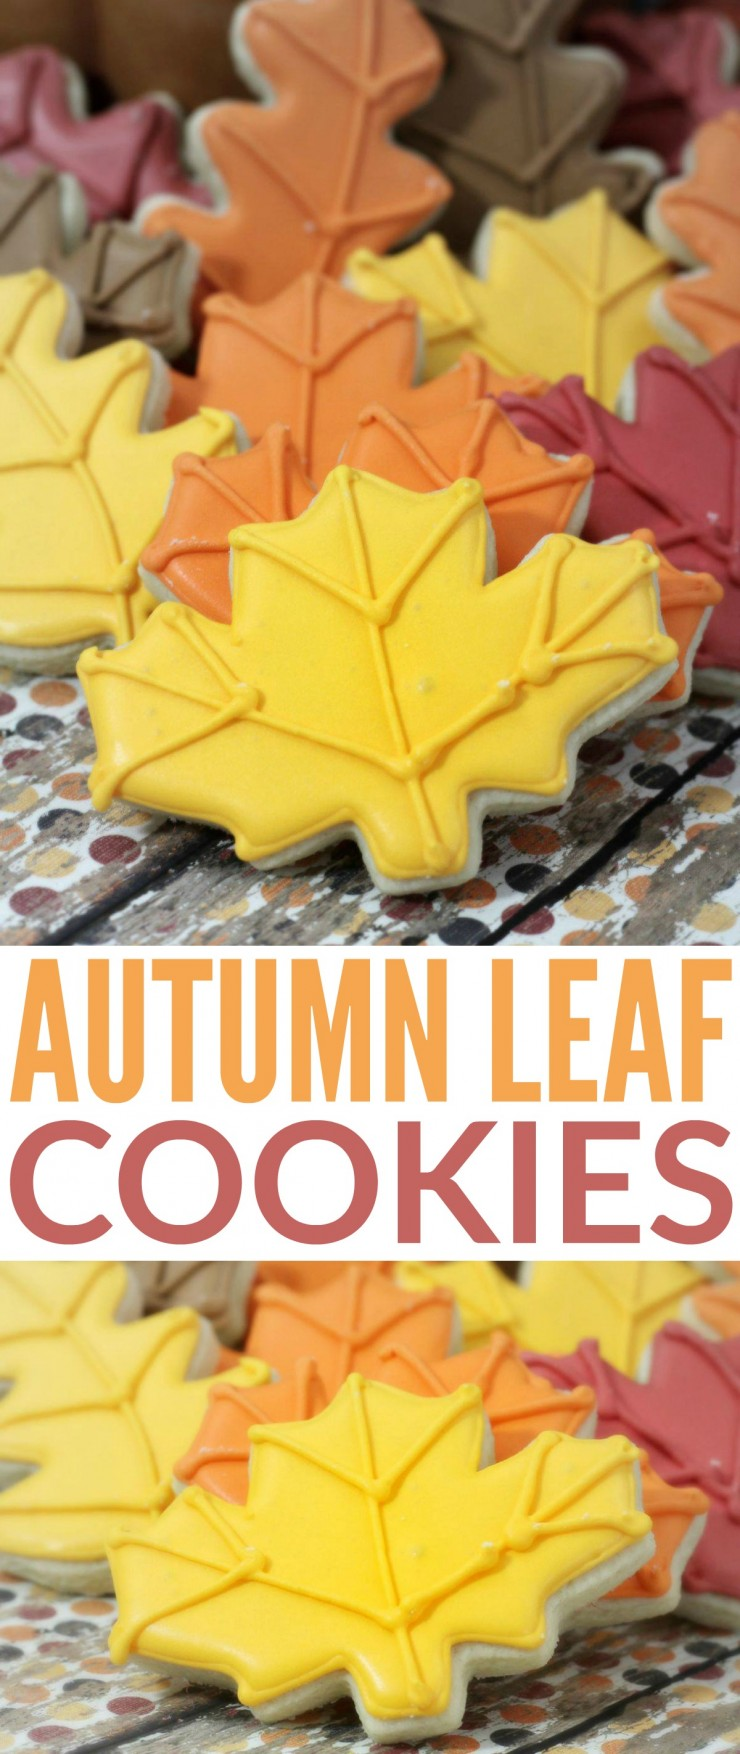 These autumn leaf cookies are almost too pretty to eat. Thankfully this sugar cookie recipe is so delicious and full of flavour you won't feel bad for long!